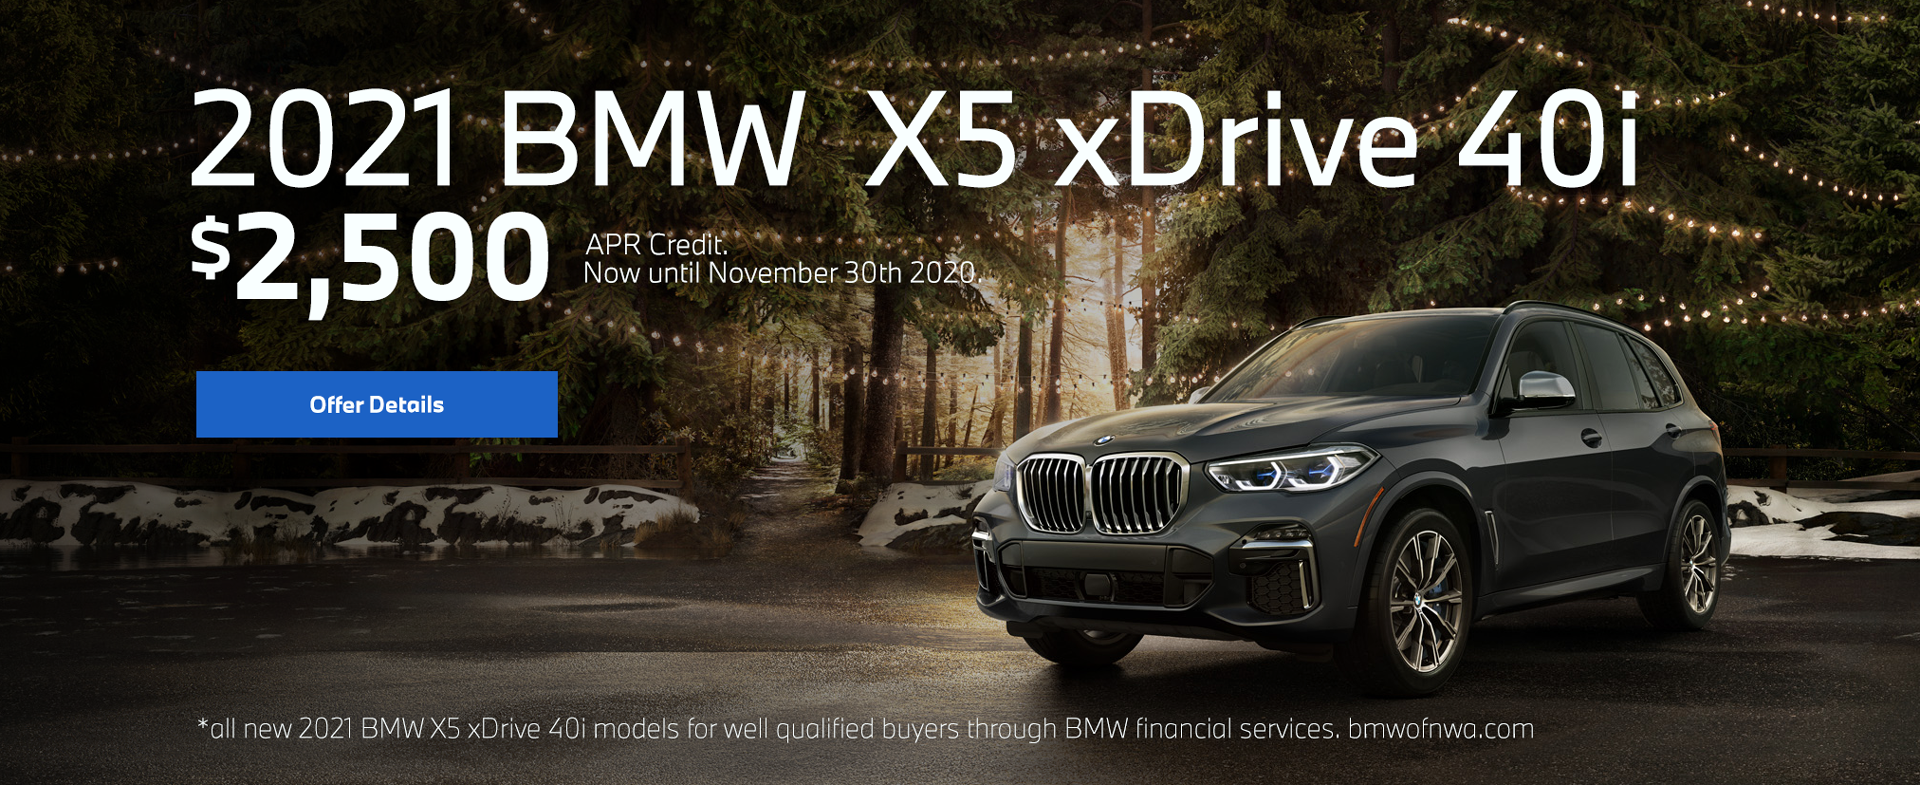 2021 BMW x5 Drive 40I $2,500 Apr credit. Now until November 30th 2020.